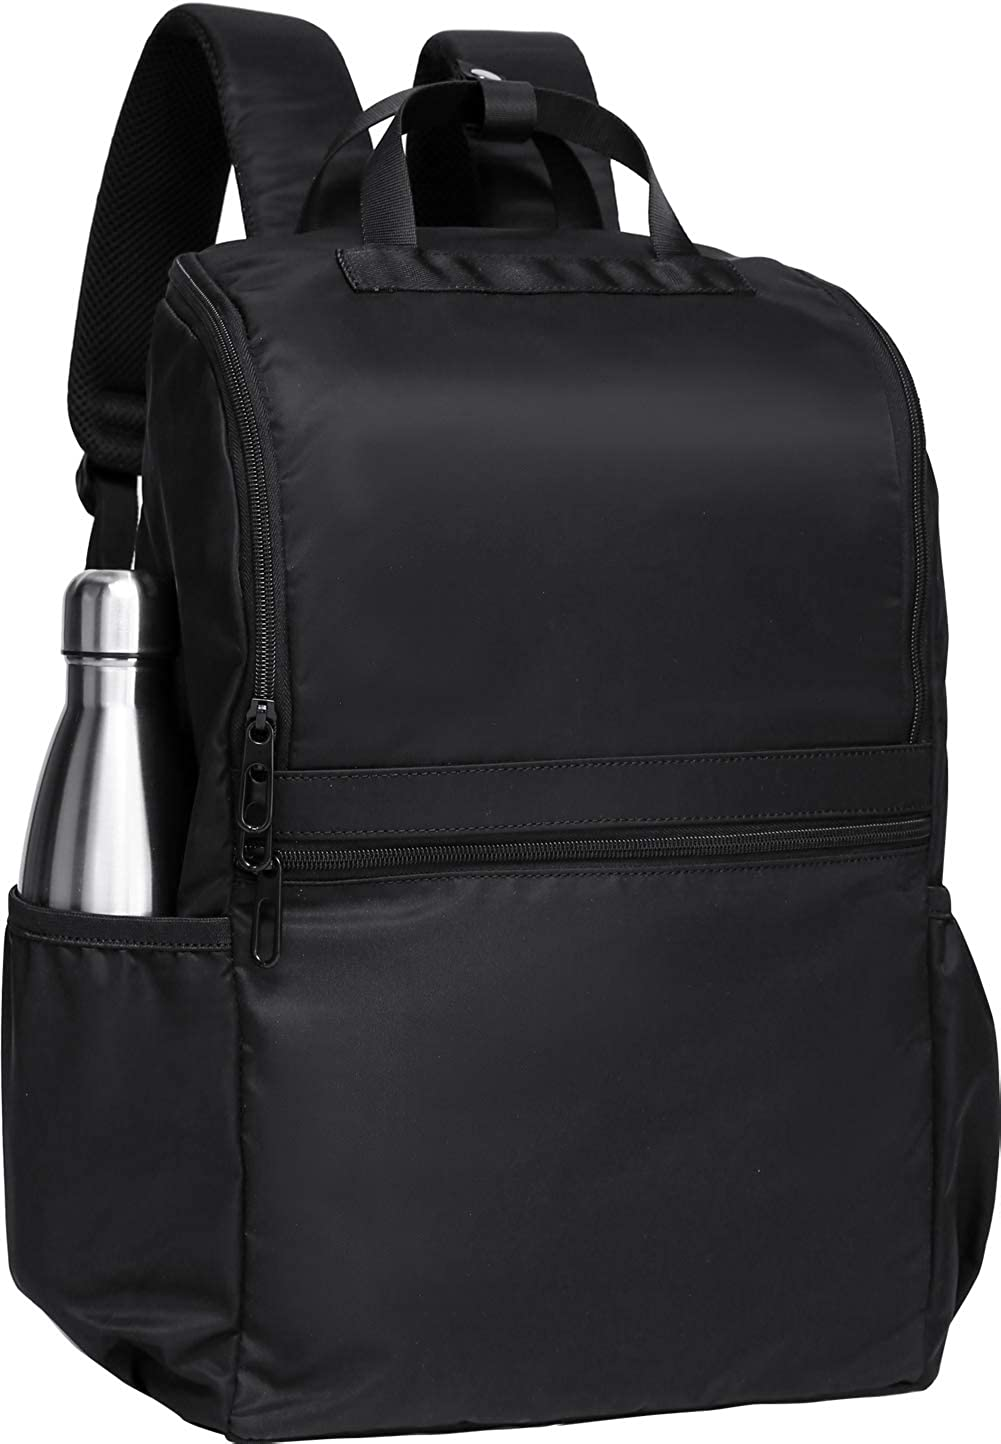 Black Backpack 14 Pockets 0.8lb Lightweight Laptop Bag Waterproof Travel School